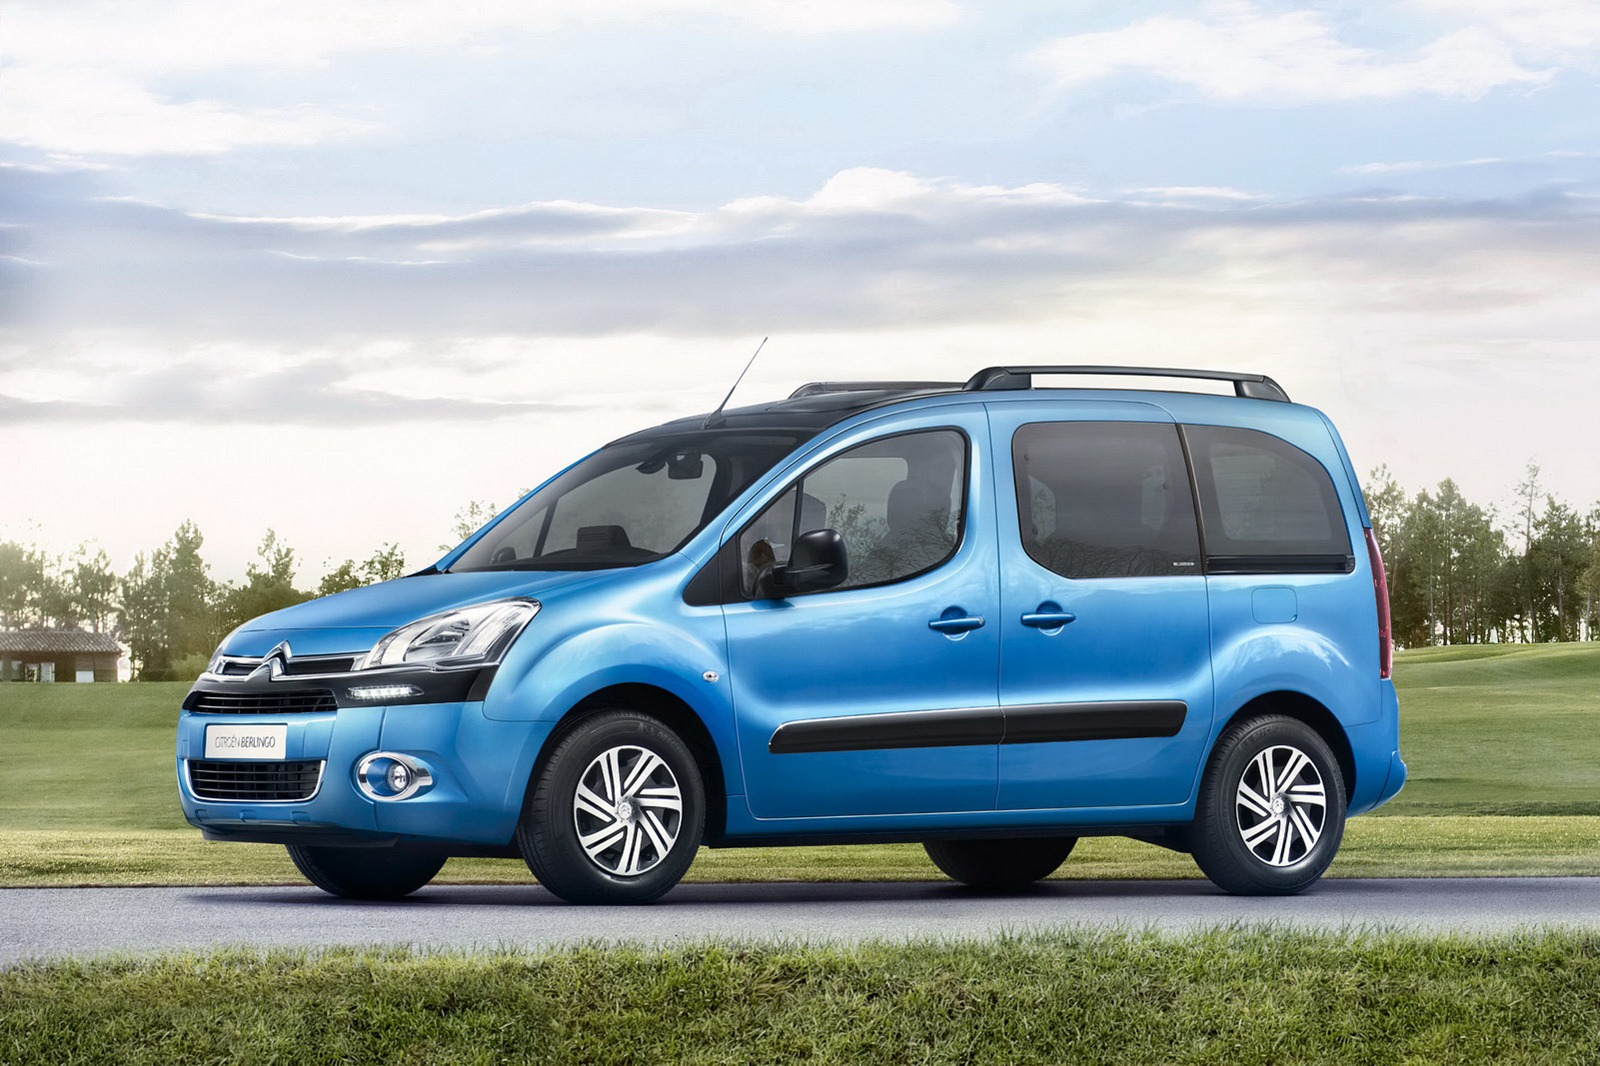 2012 Citroen Berlingo and Jumpy Wallpapers HD